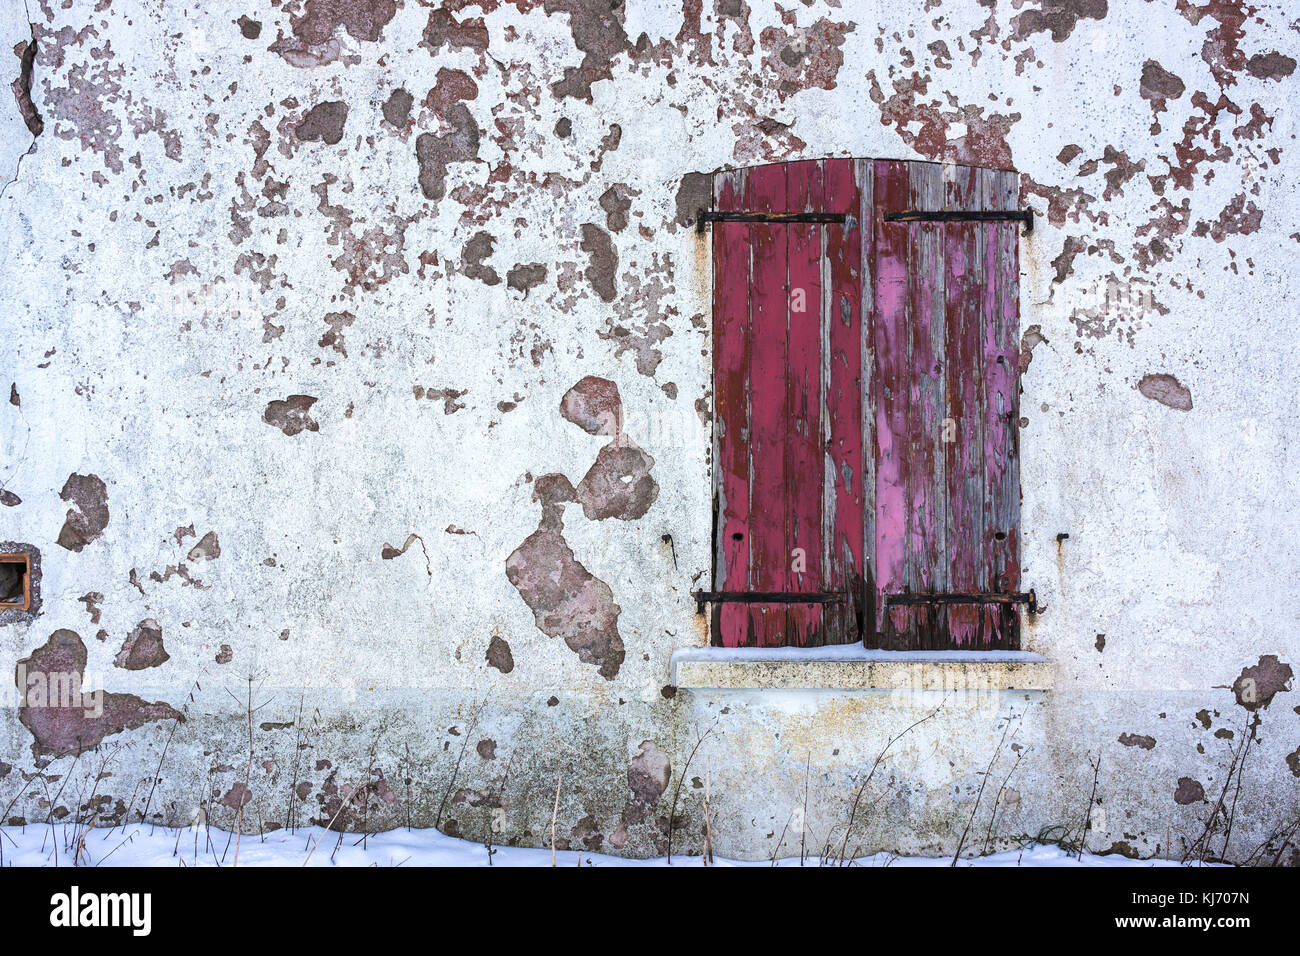 An old window with closed red worn wooden shutters on a white decrepit wall in winter with copy space. - Stock Image